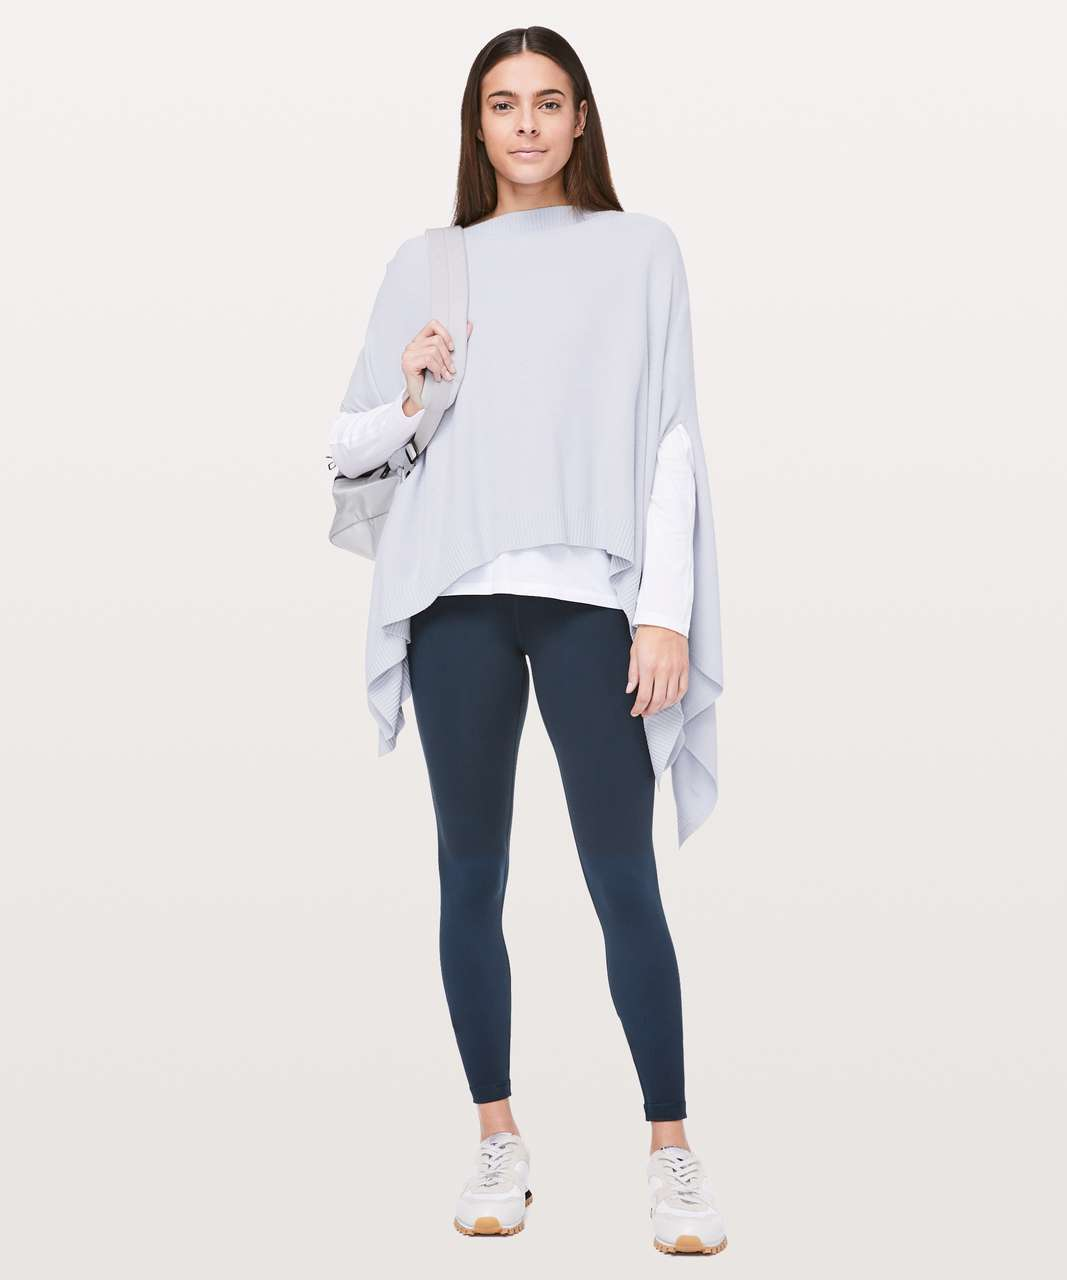 Lululemon Forward Flow Cape - Silver Fox / Alpine White